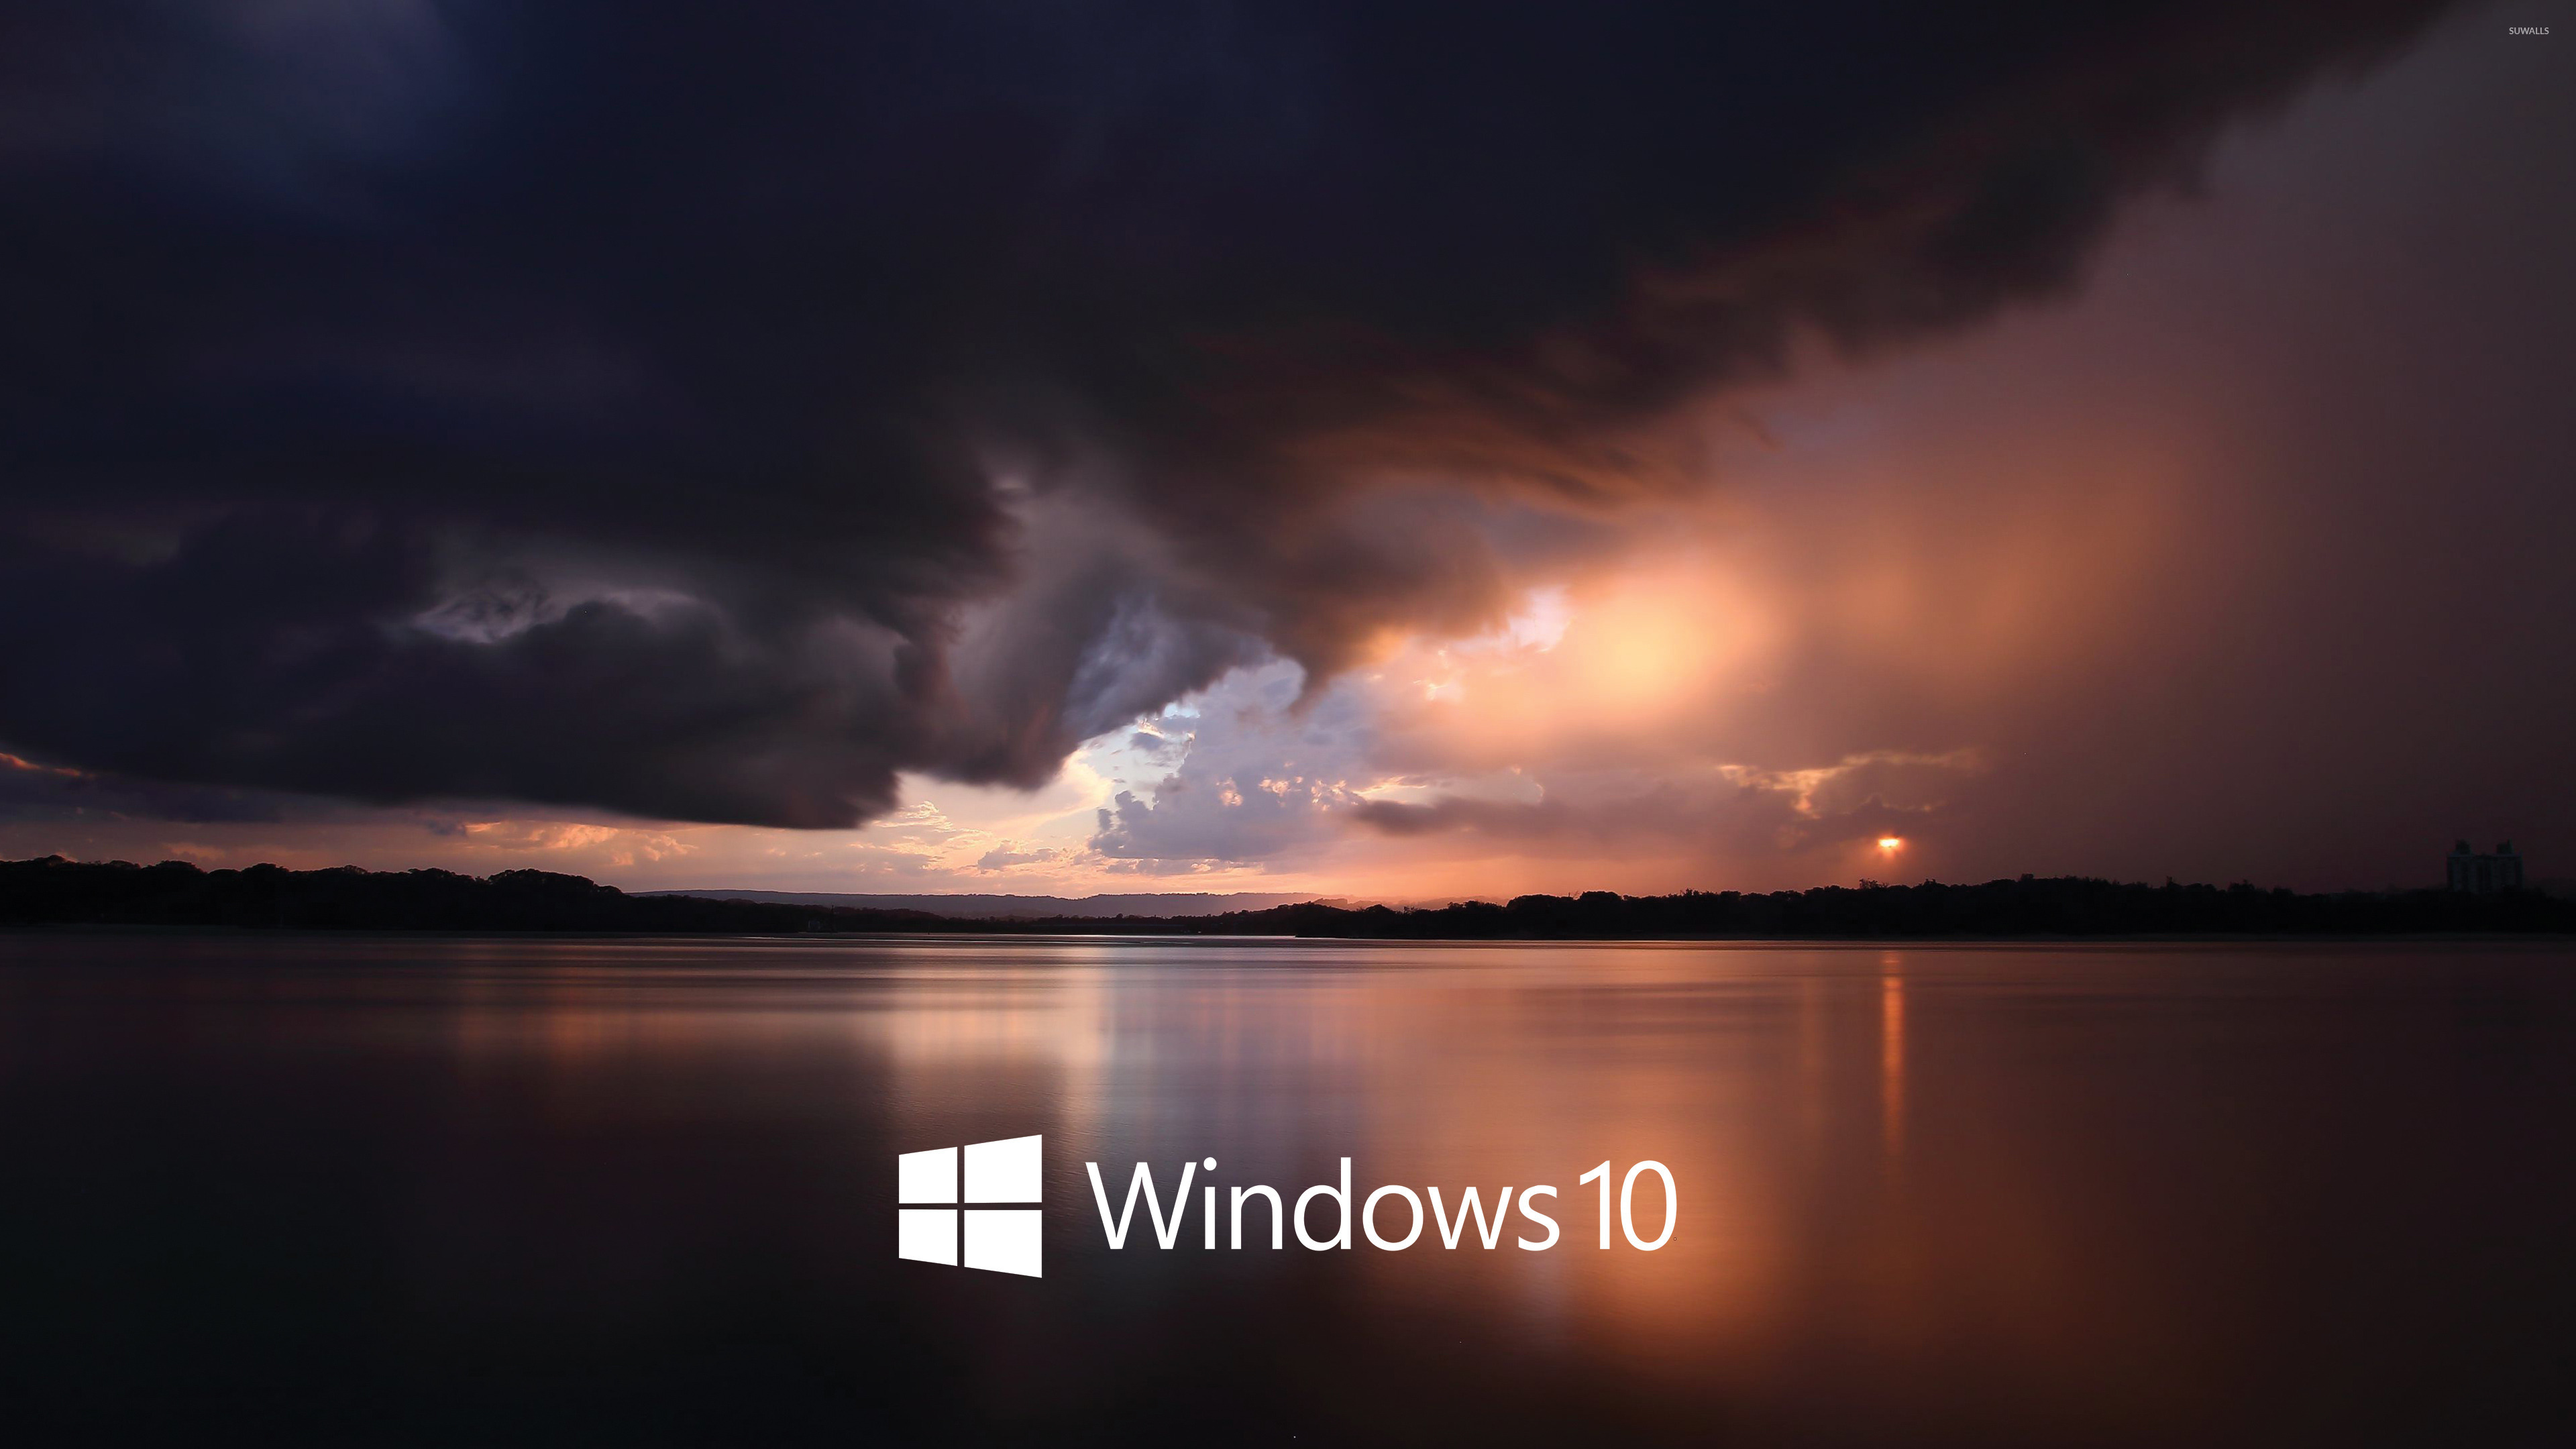 windows 10 white text logo over the stormy sea wallpaper - computer